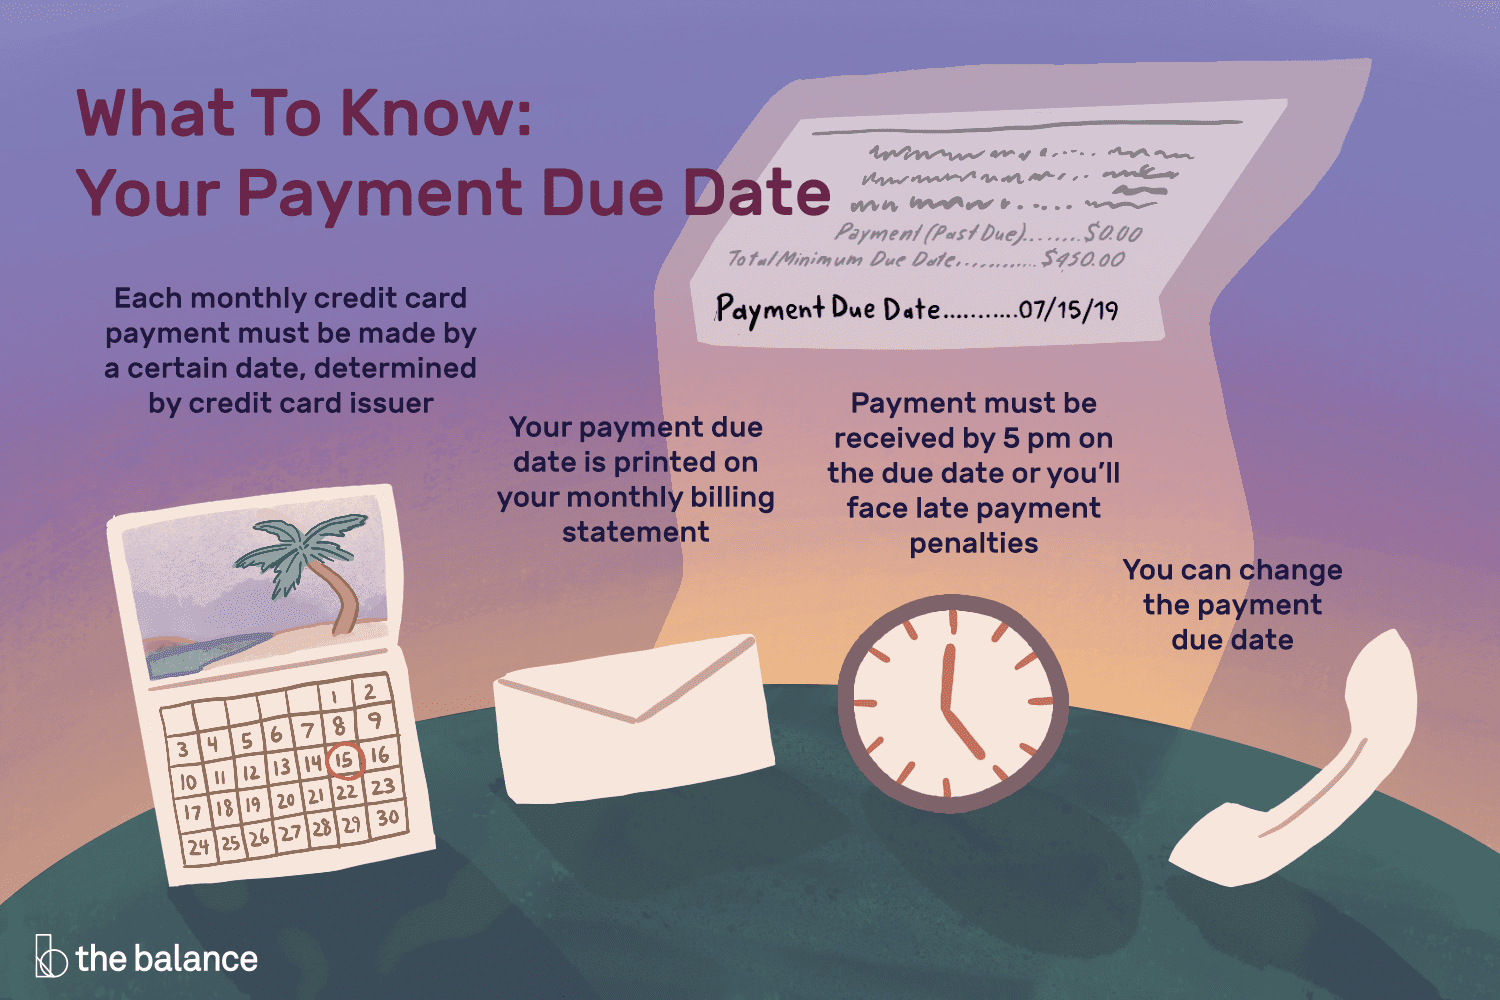 What To Know About Your Payment Due Date